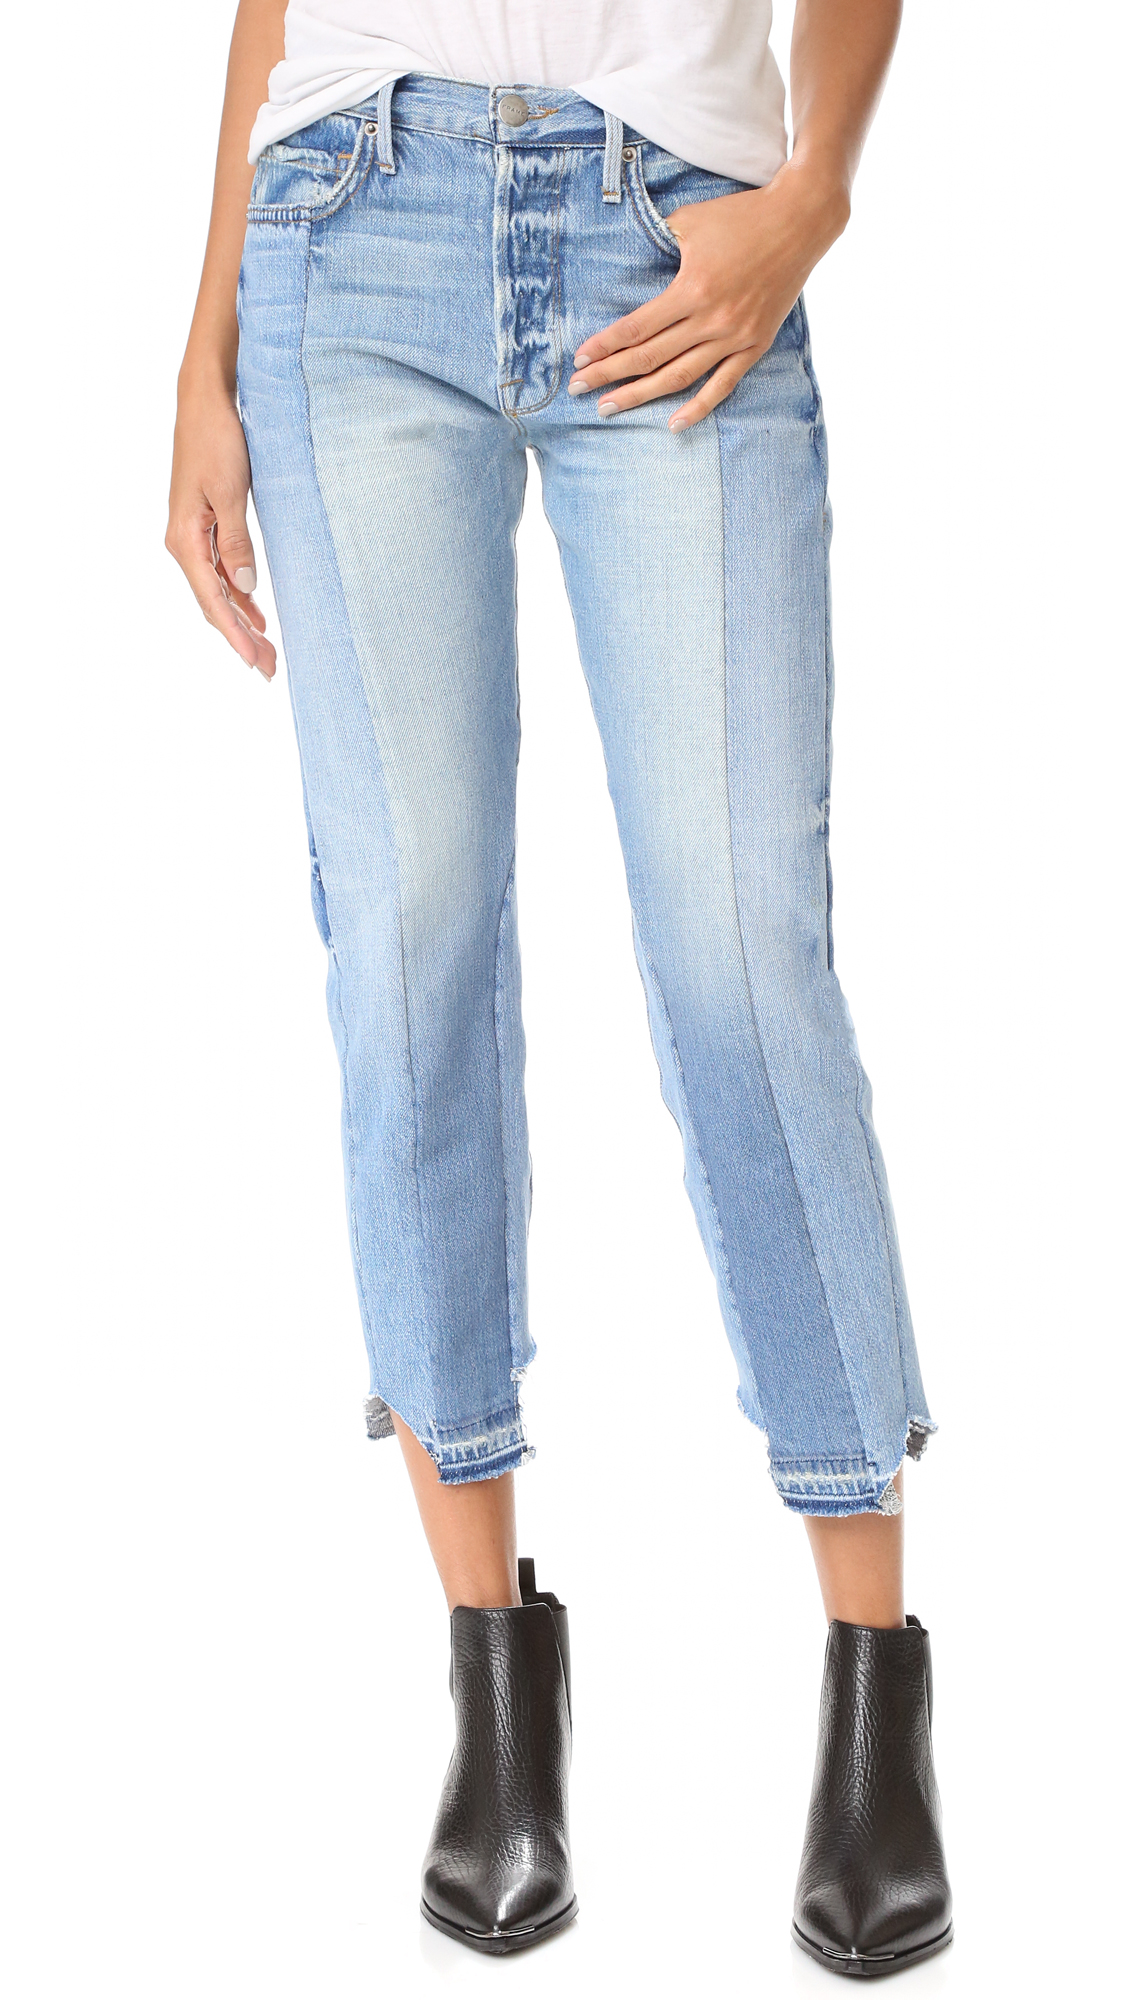 Center seams, mismatched washes, and fading accentuate the patchwork construction of these relaxed FRAME jeans. Raw, notched hem. 5 pocket styling. Button fly. Fabric: Denim. 100% cotton. Wash cold. Made in the USA. Imported materials. Measurements Rise: 10.25in / 26